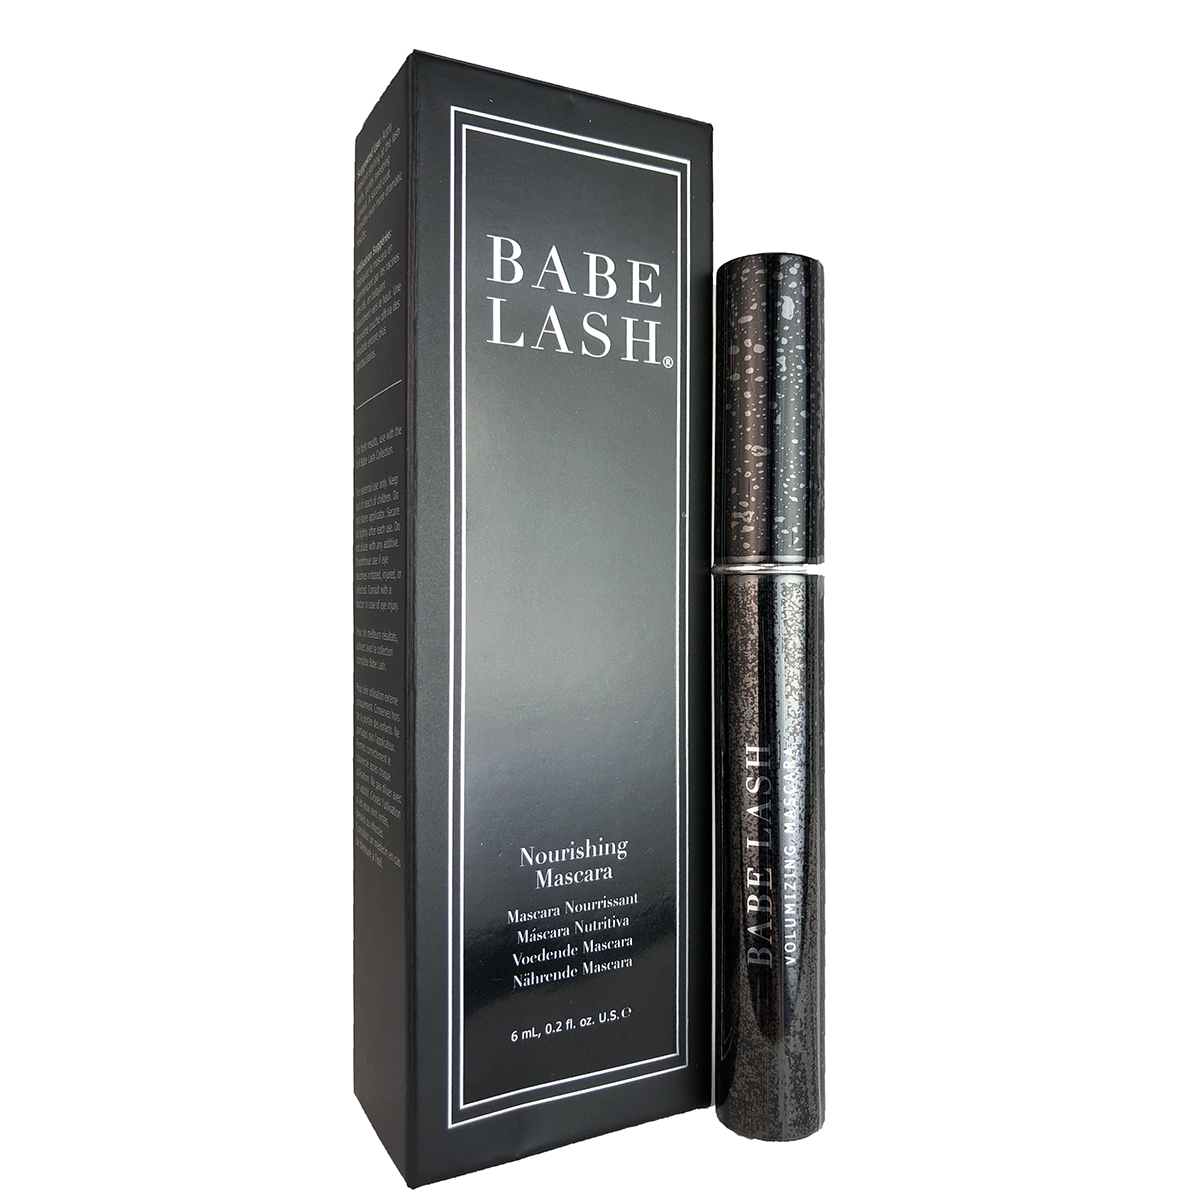 c2f040323be Babe Lash 6 ml Volumizing Eyelash Mascara Jet Black 799493581027 | eBay